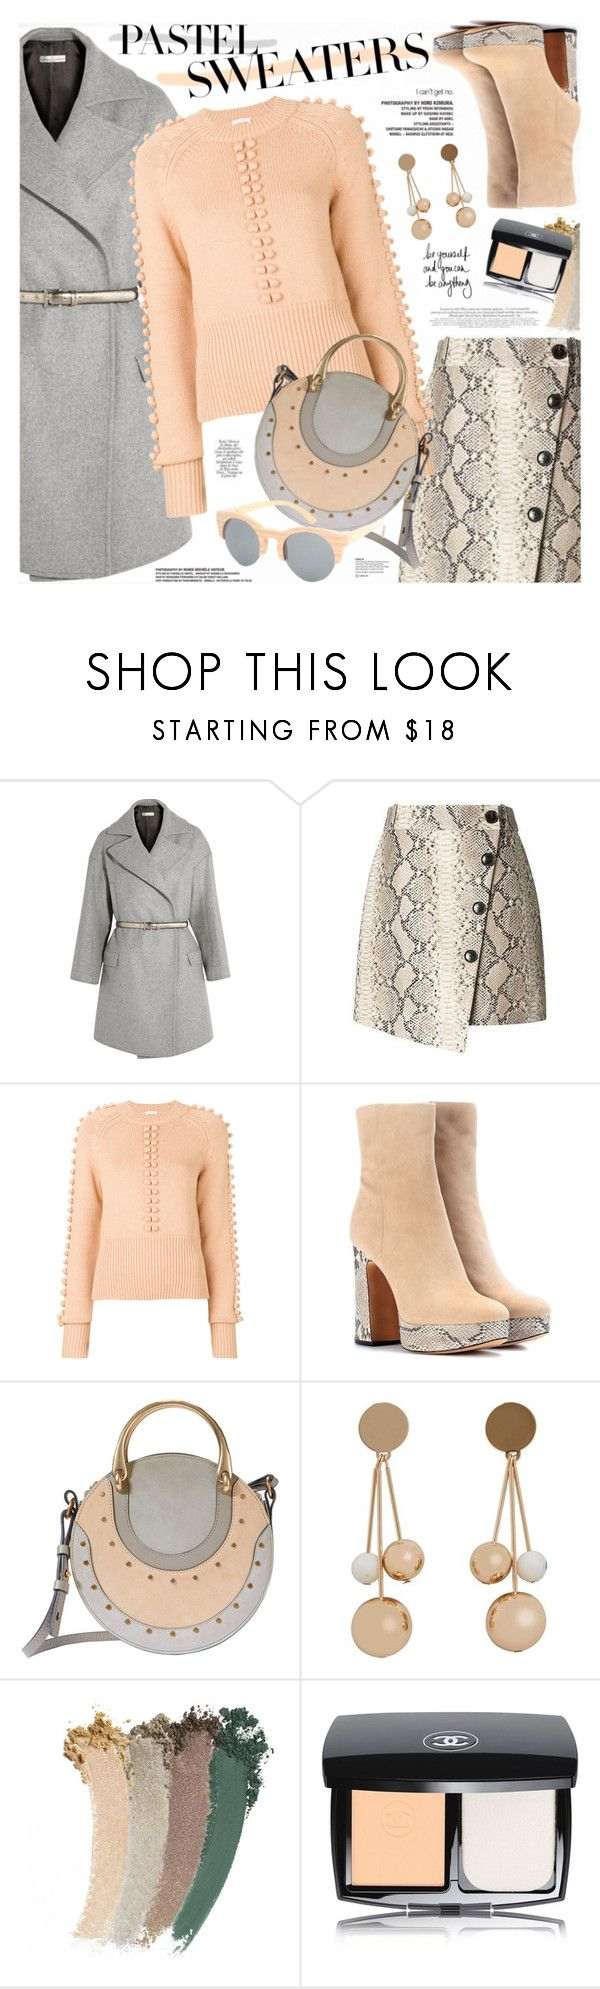 """""""So Sweet: Pastel Sweaters"""" by katjuncica ❤ liked on Polyvore featuring Banana Republic, Alexandre Birman, Chloé, MANGO, Gucci, Chanel and pastelsweaters"""